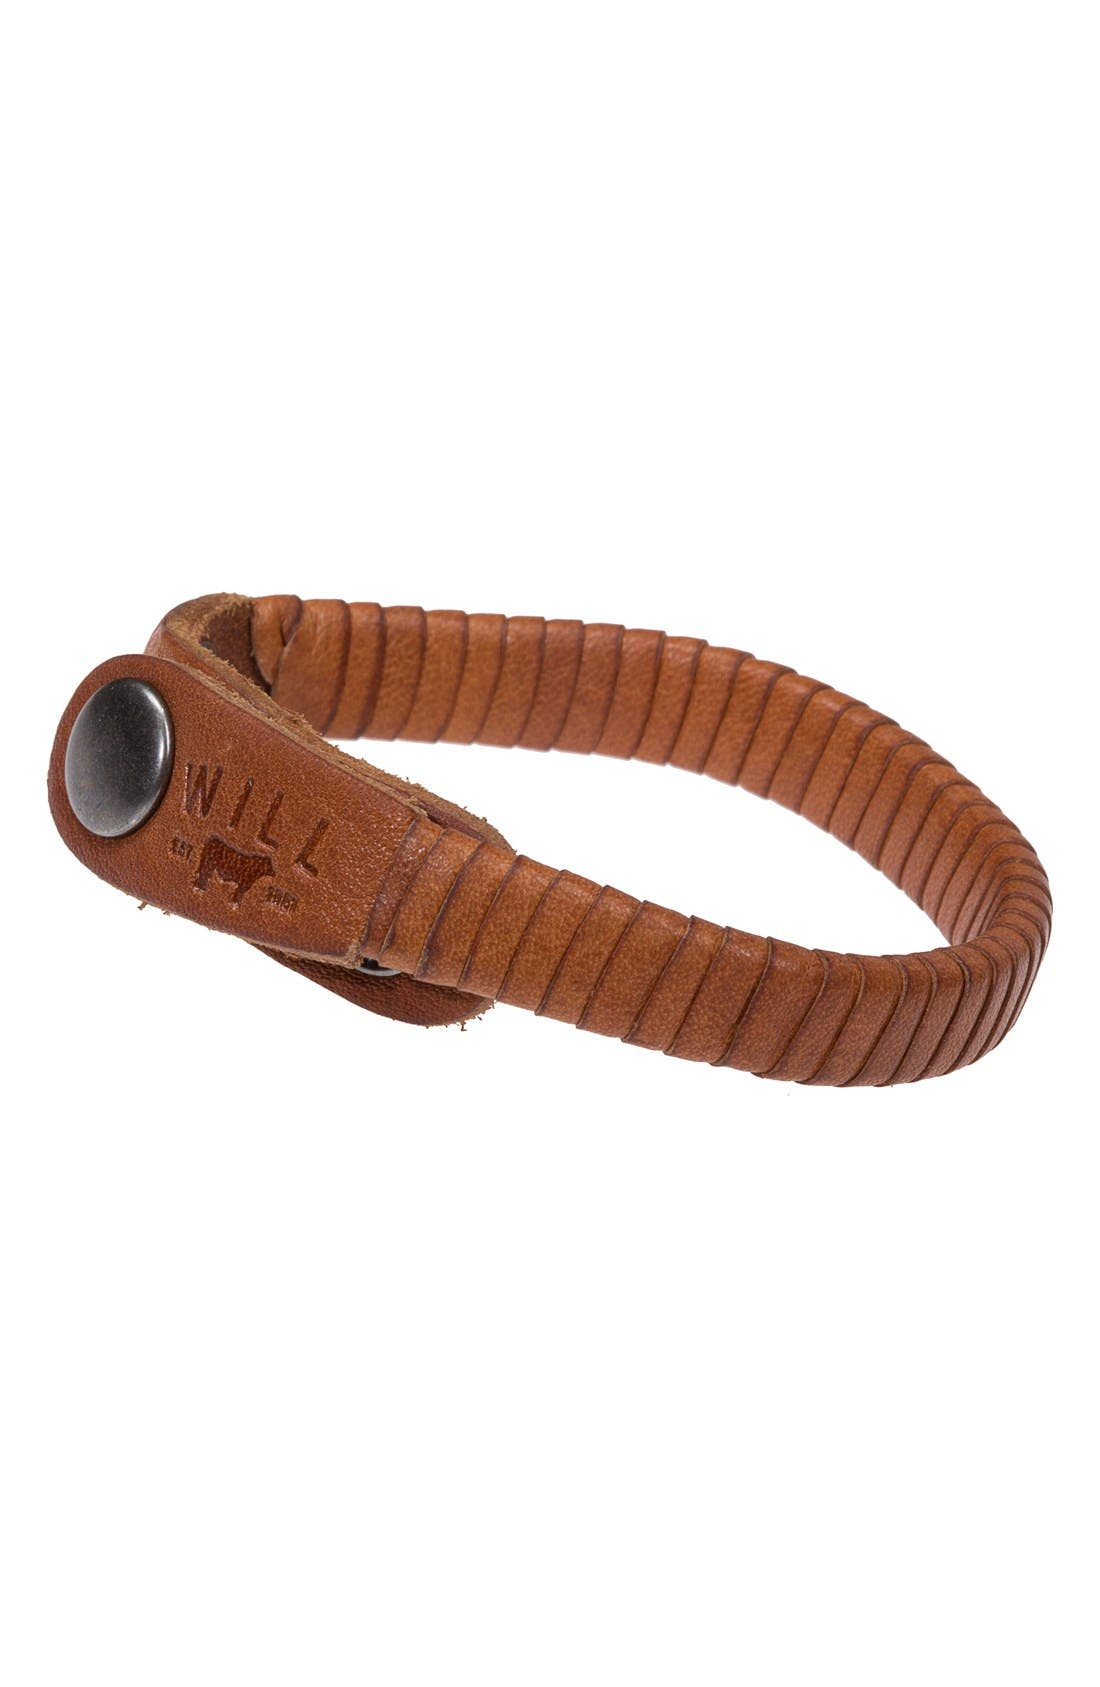 Alternate Image 1 Selected - Will Leather Goods 'Peddler' Bracelet